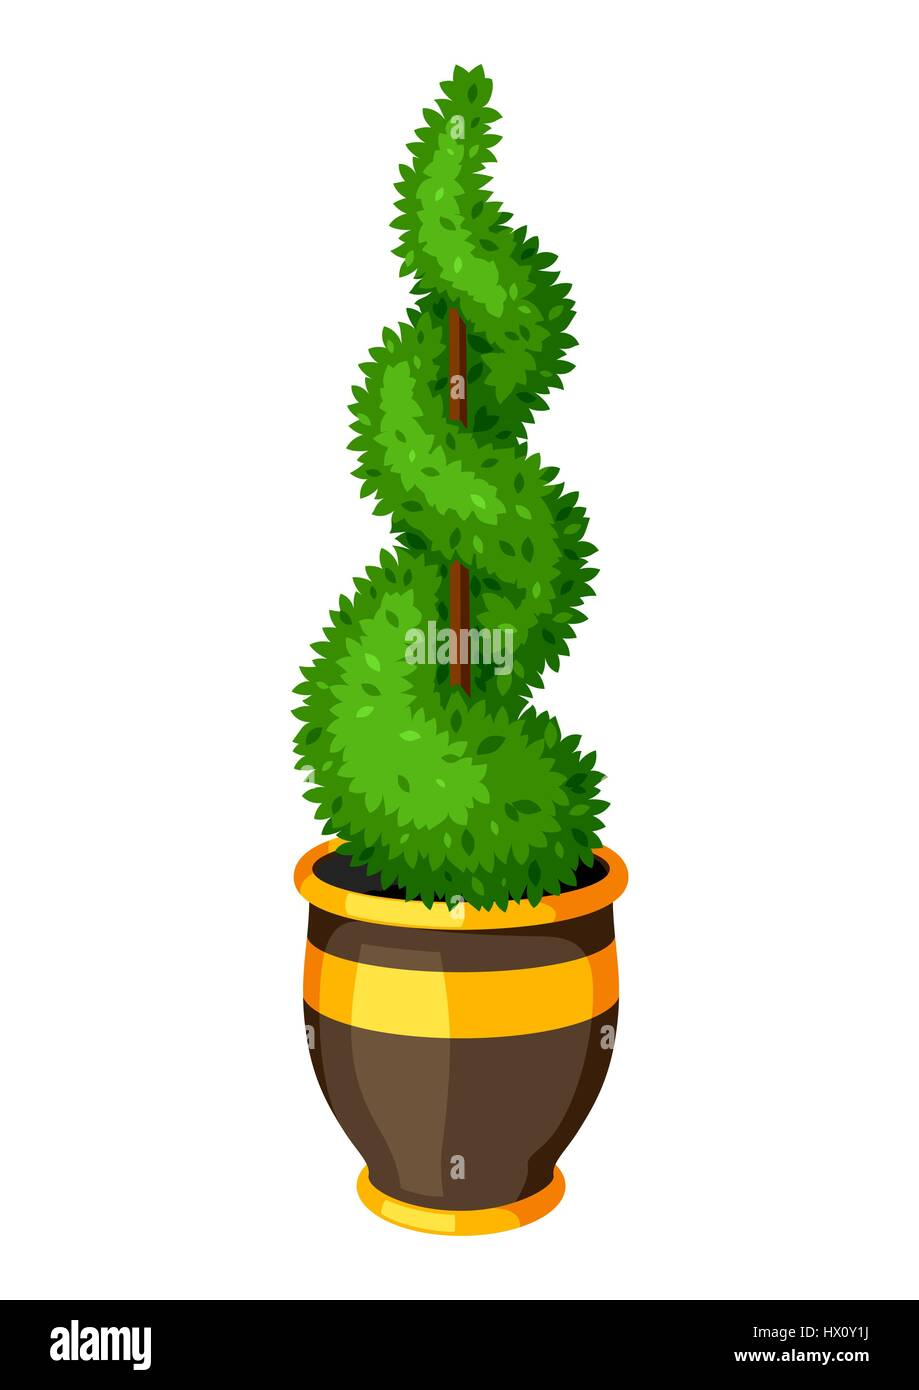 Boxwood Topiary Garden Plant Decorative Tree In Flowerpot Stock Vector Image Art Alamy